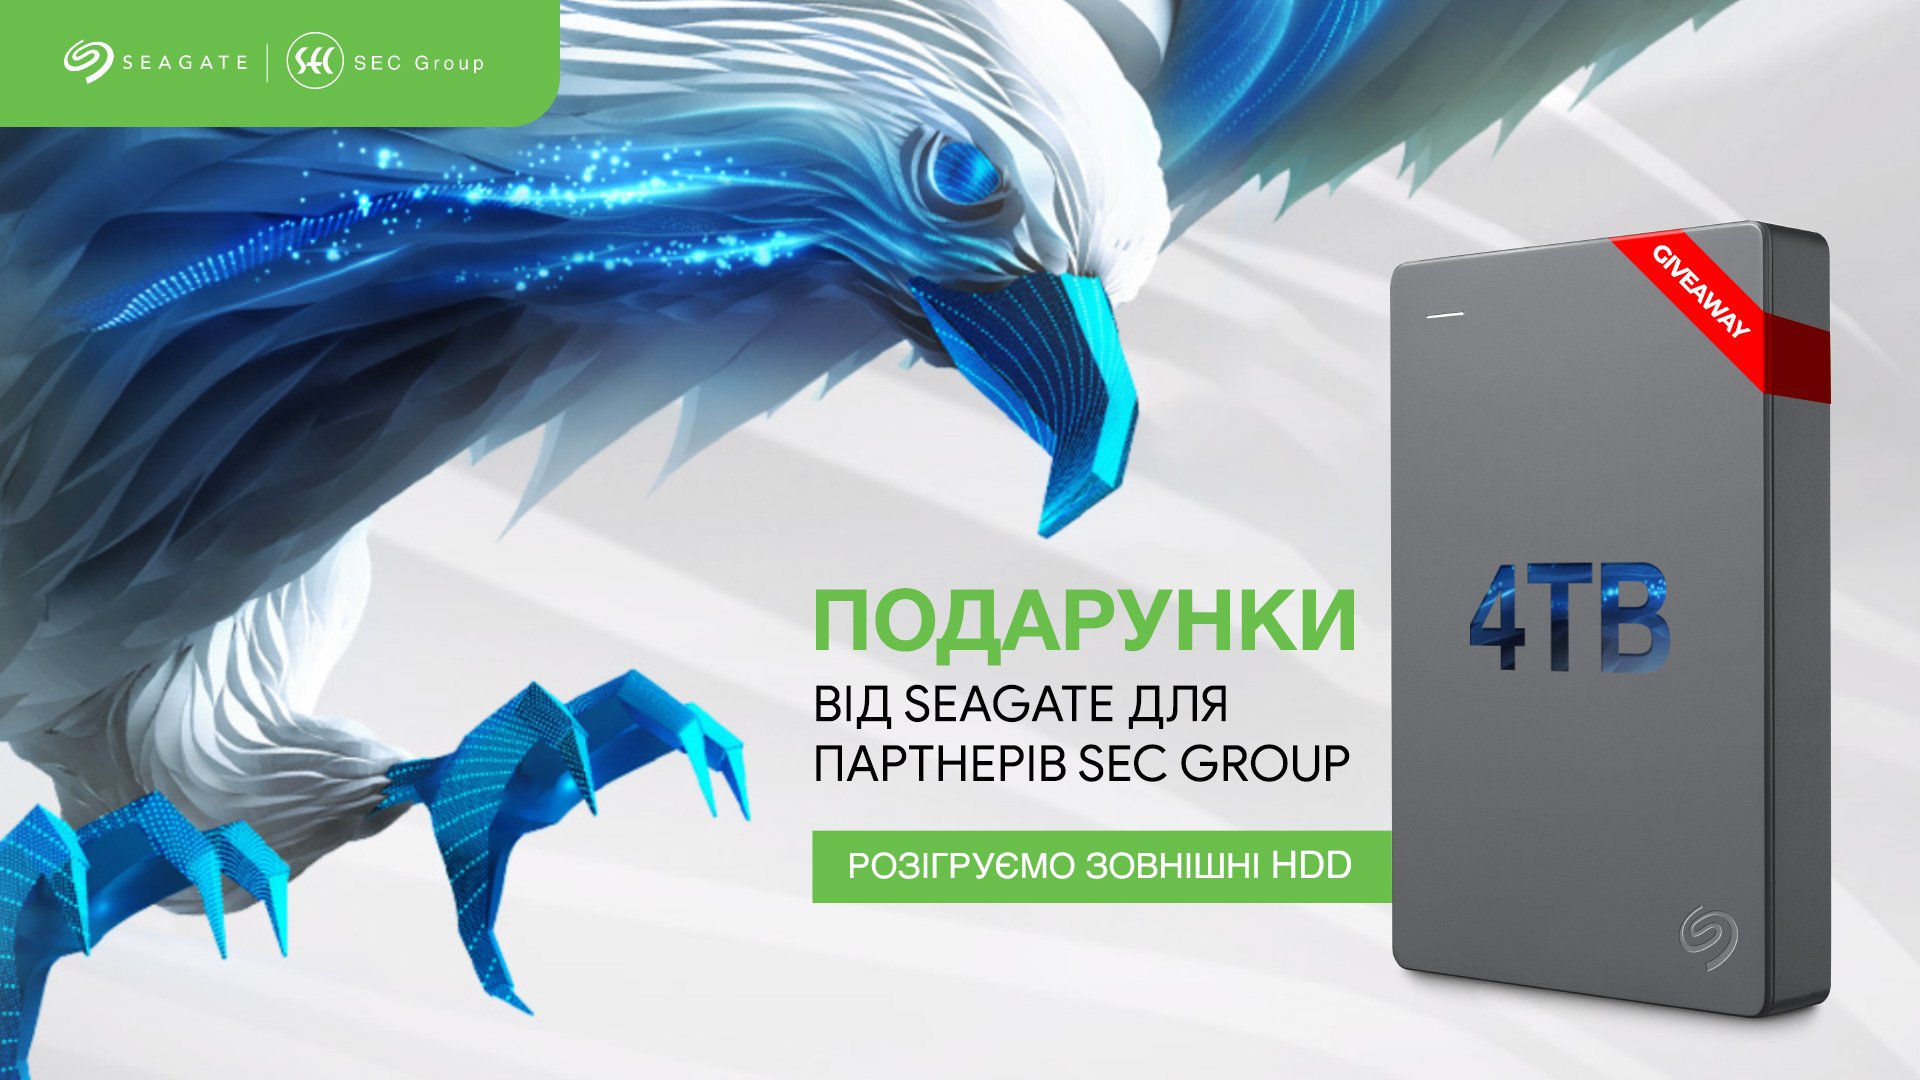 seagate sec group giveaway